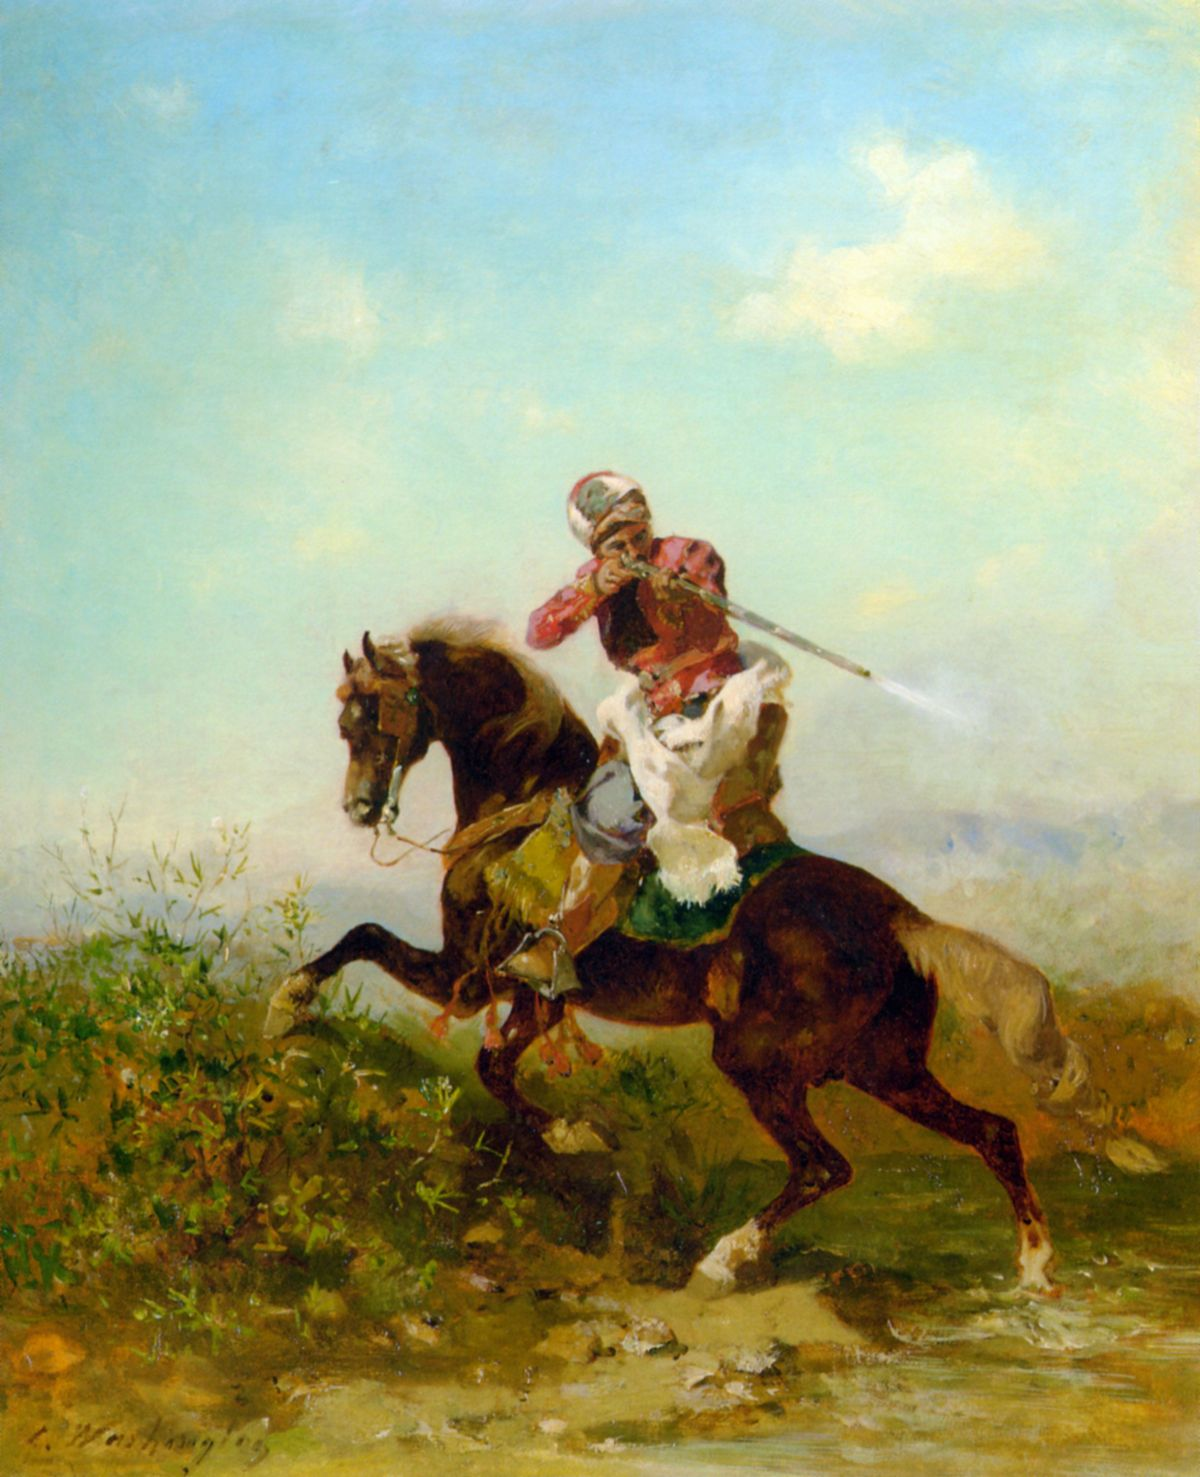 An Arab Warrior by Georges Washington